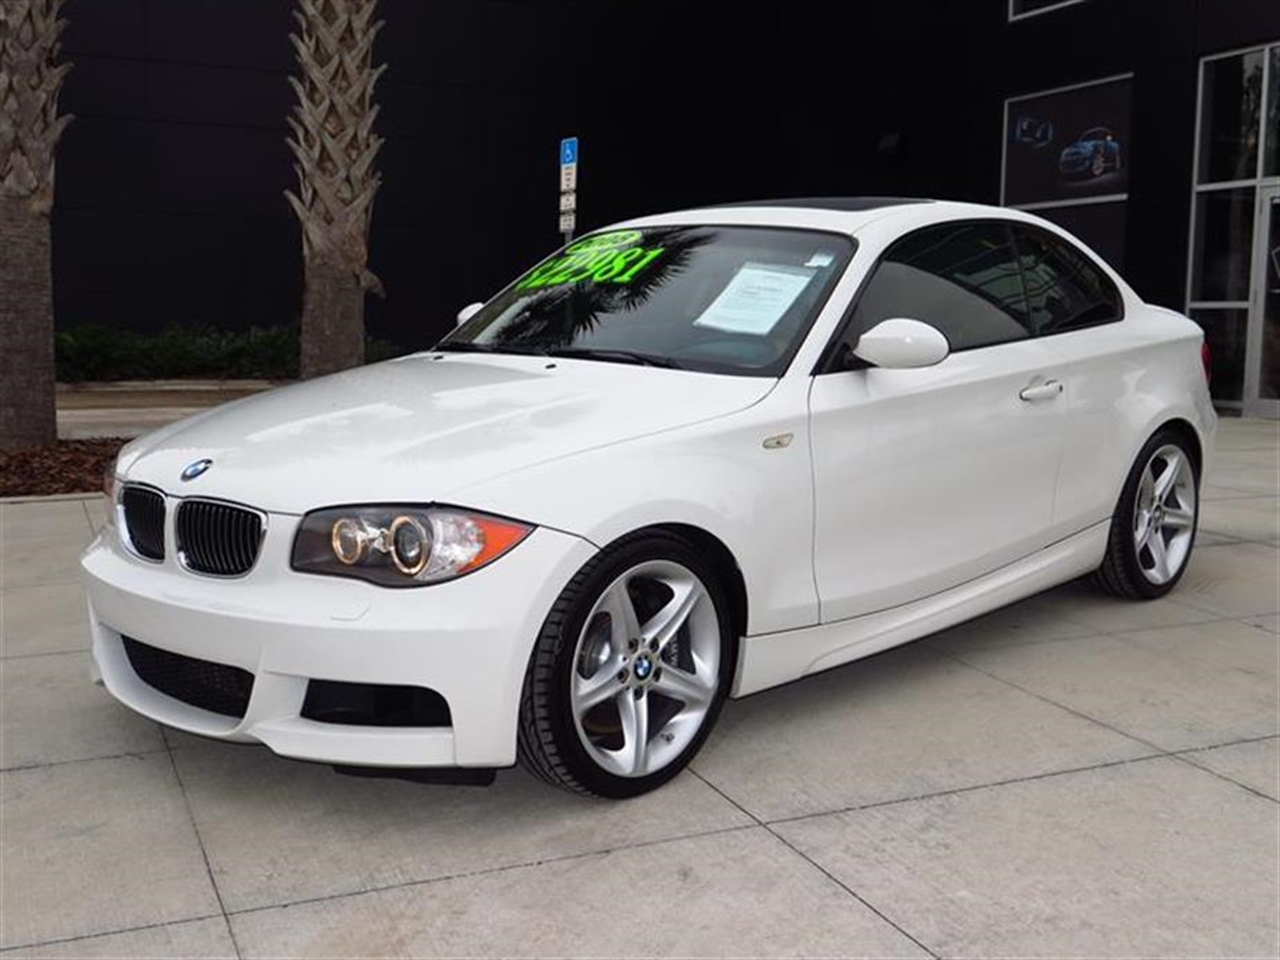 2008 BMW 1 SERIES 2dr Cpe 135i 77082 miles 3-channel FM diversity antenna 3-spoke leather-wrapped